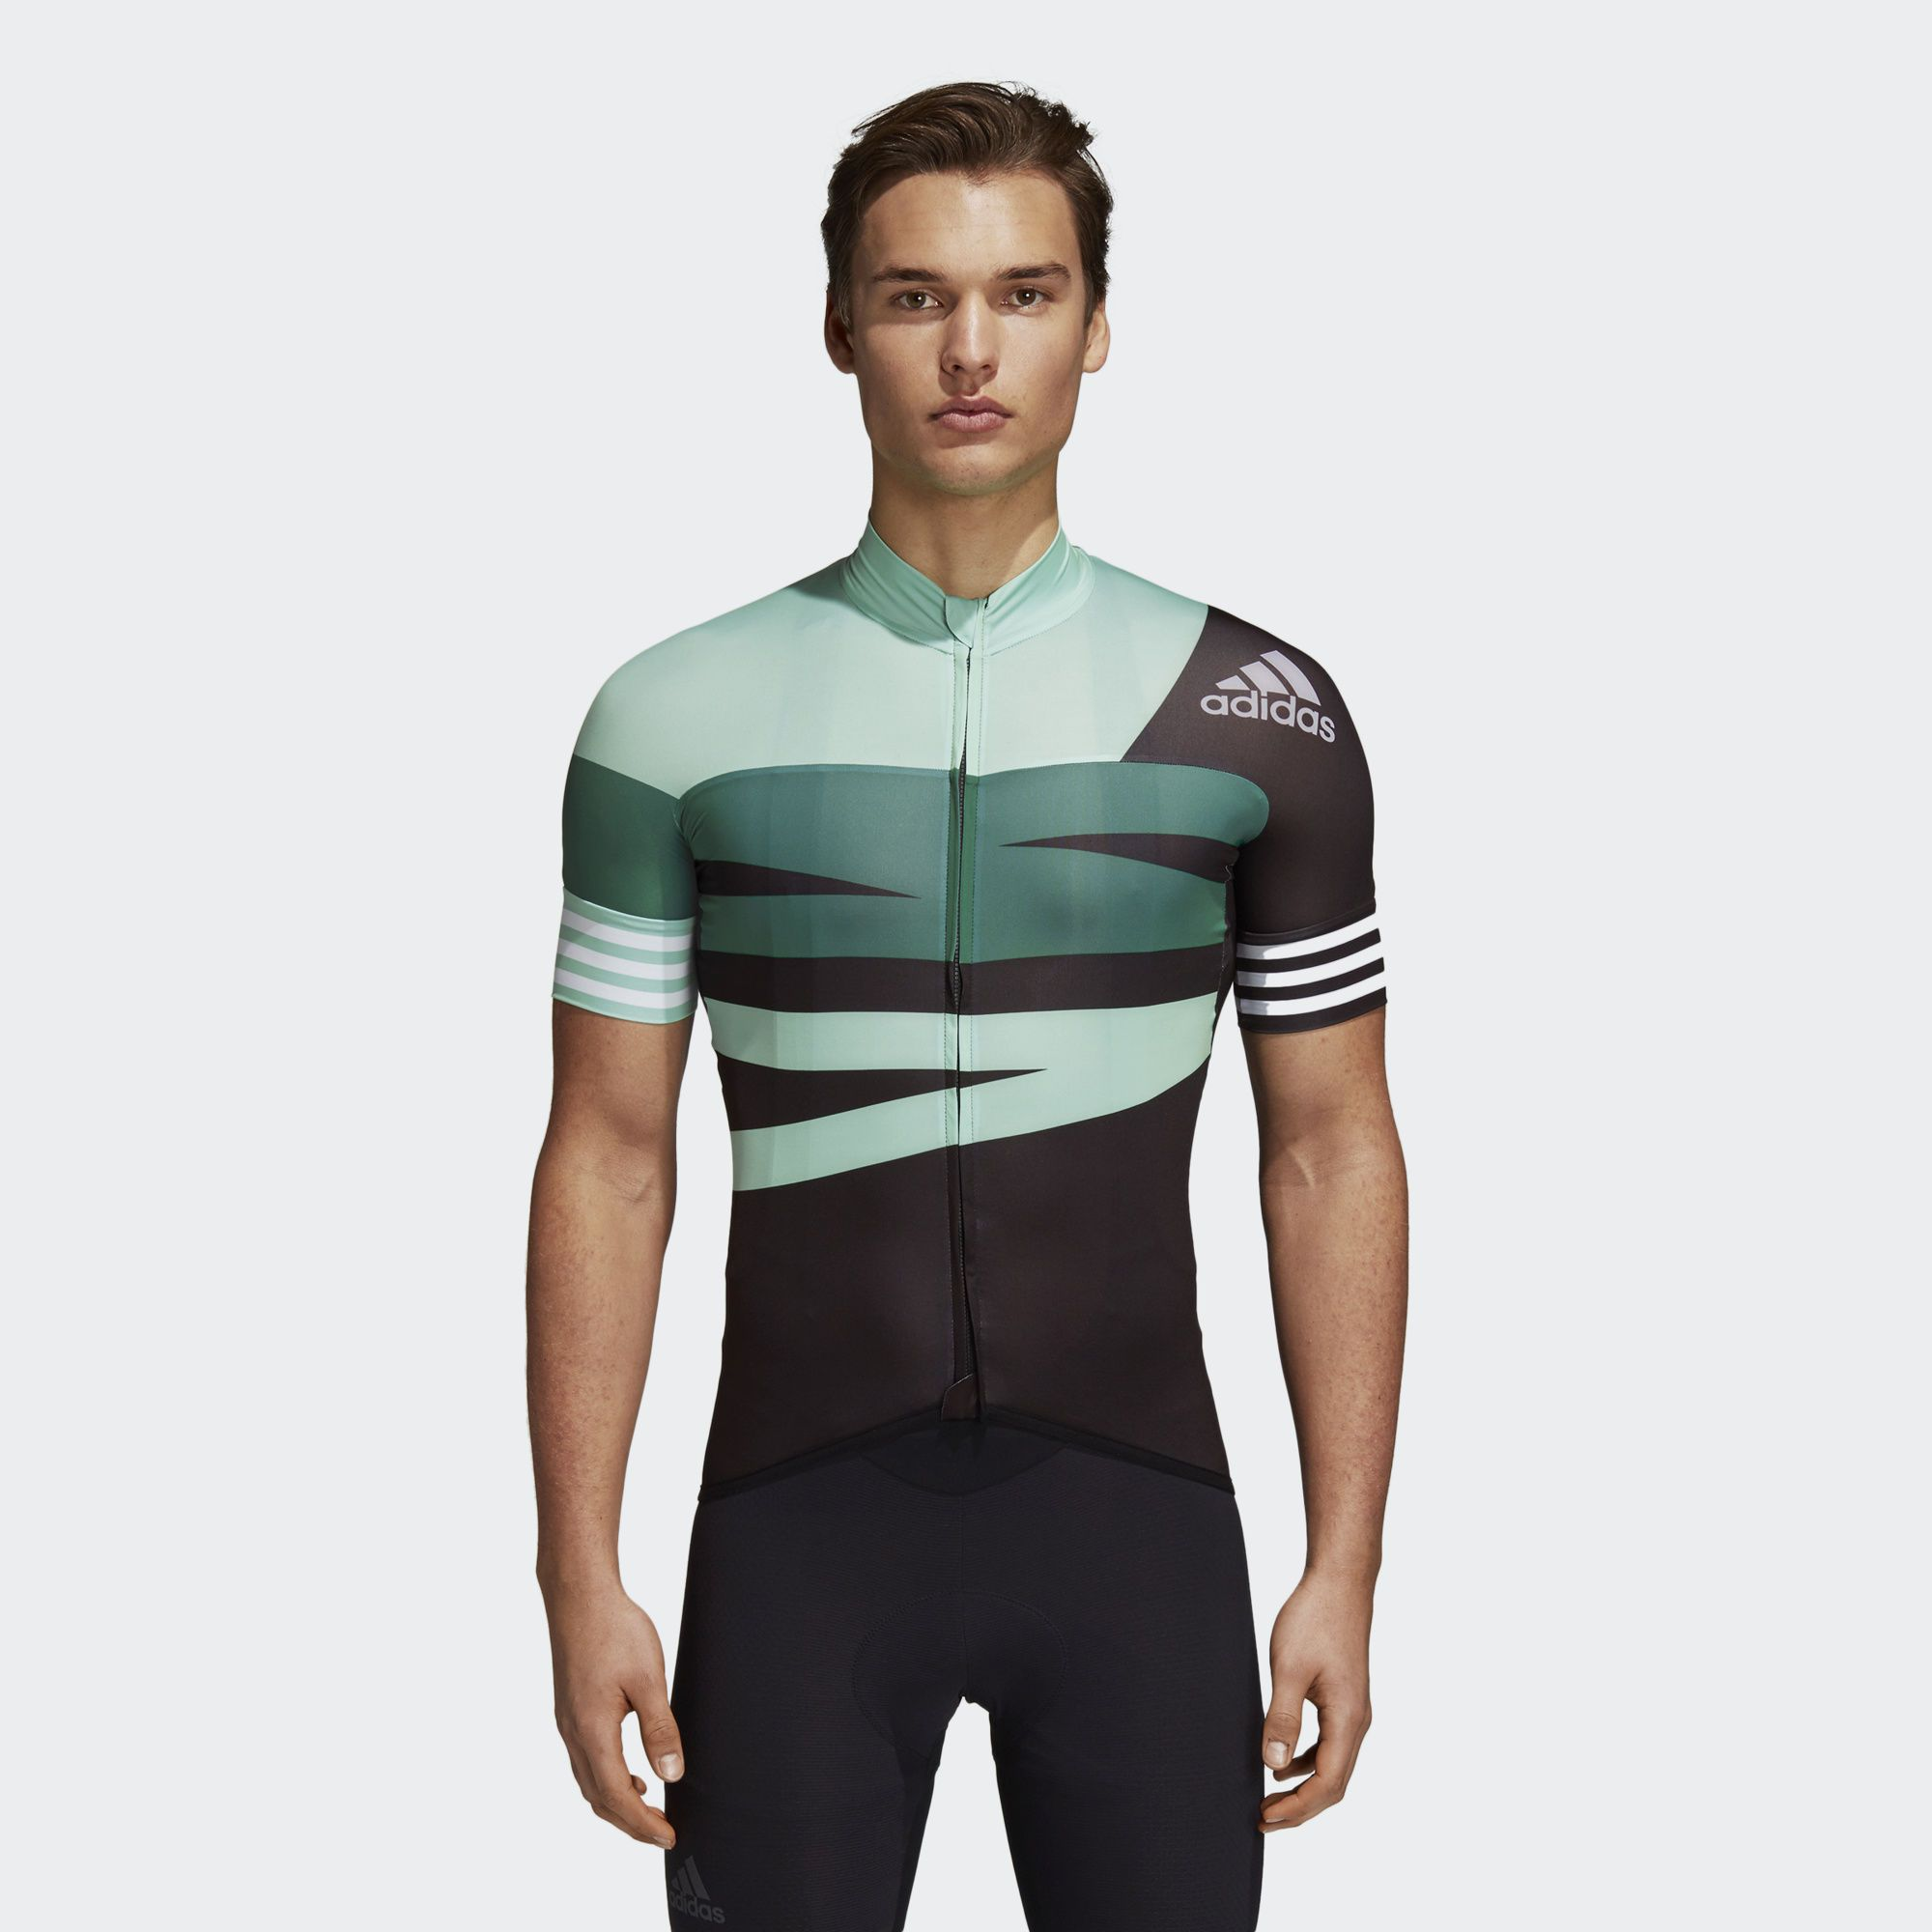 Outto Mens Bike Cycling Jersey Short Sleeve Road Riding Shirts Reflective Clothes